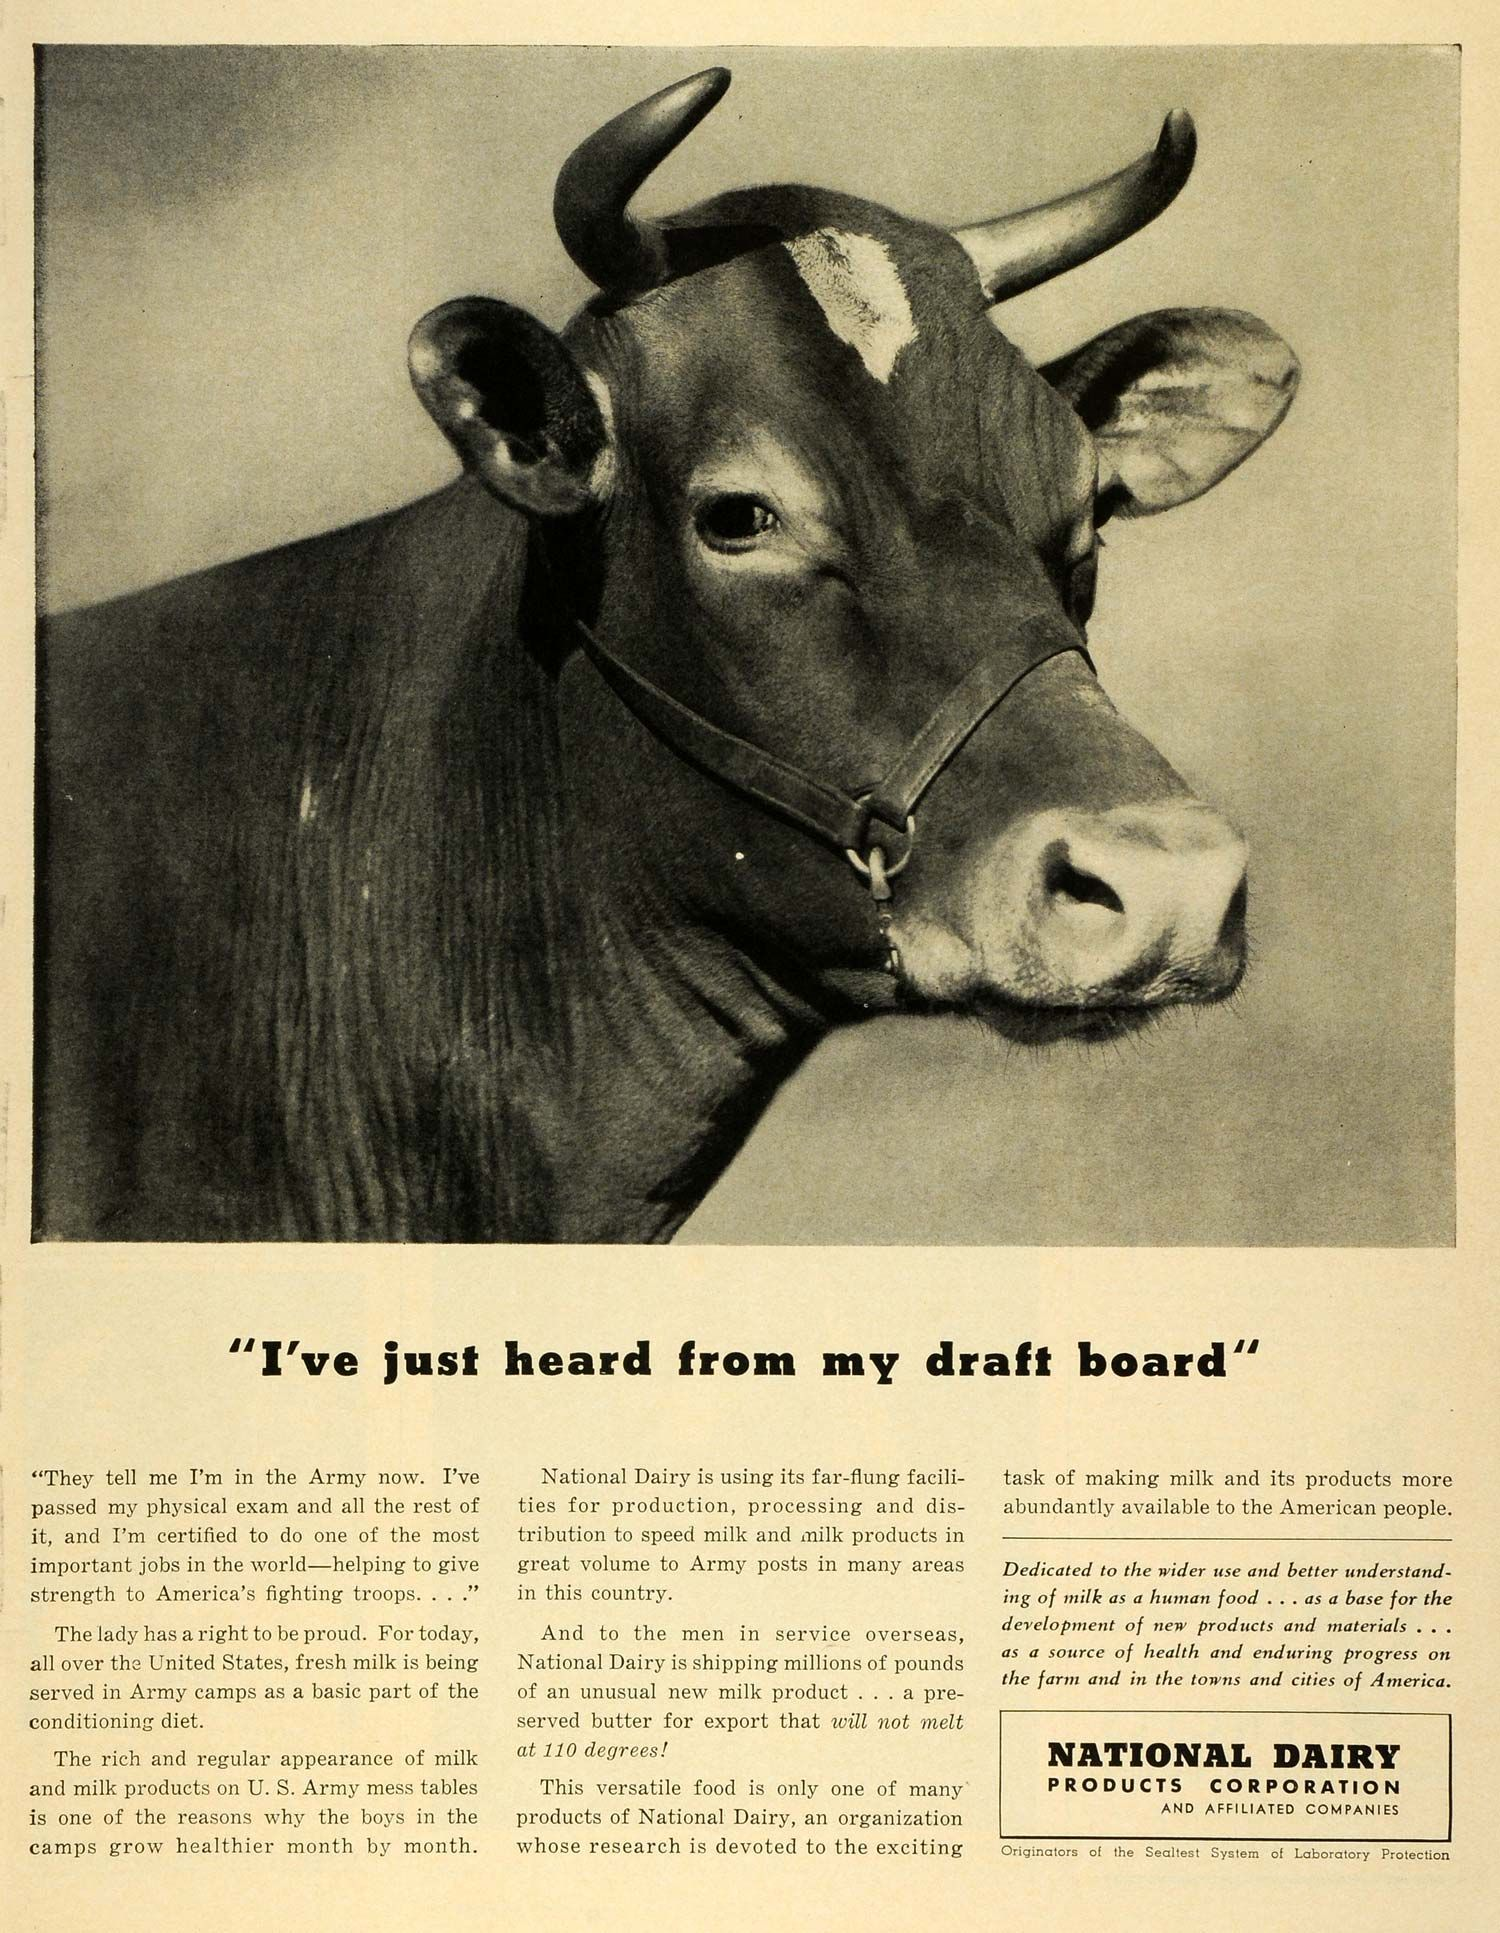 U.S.: National Dairy Products Corporation ad, 1942